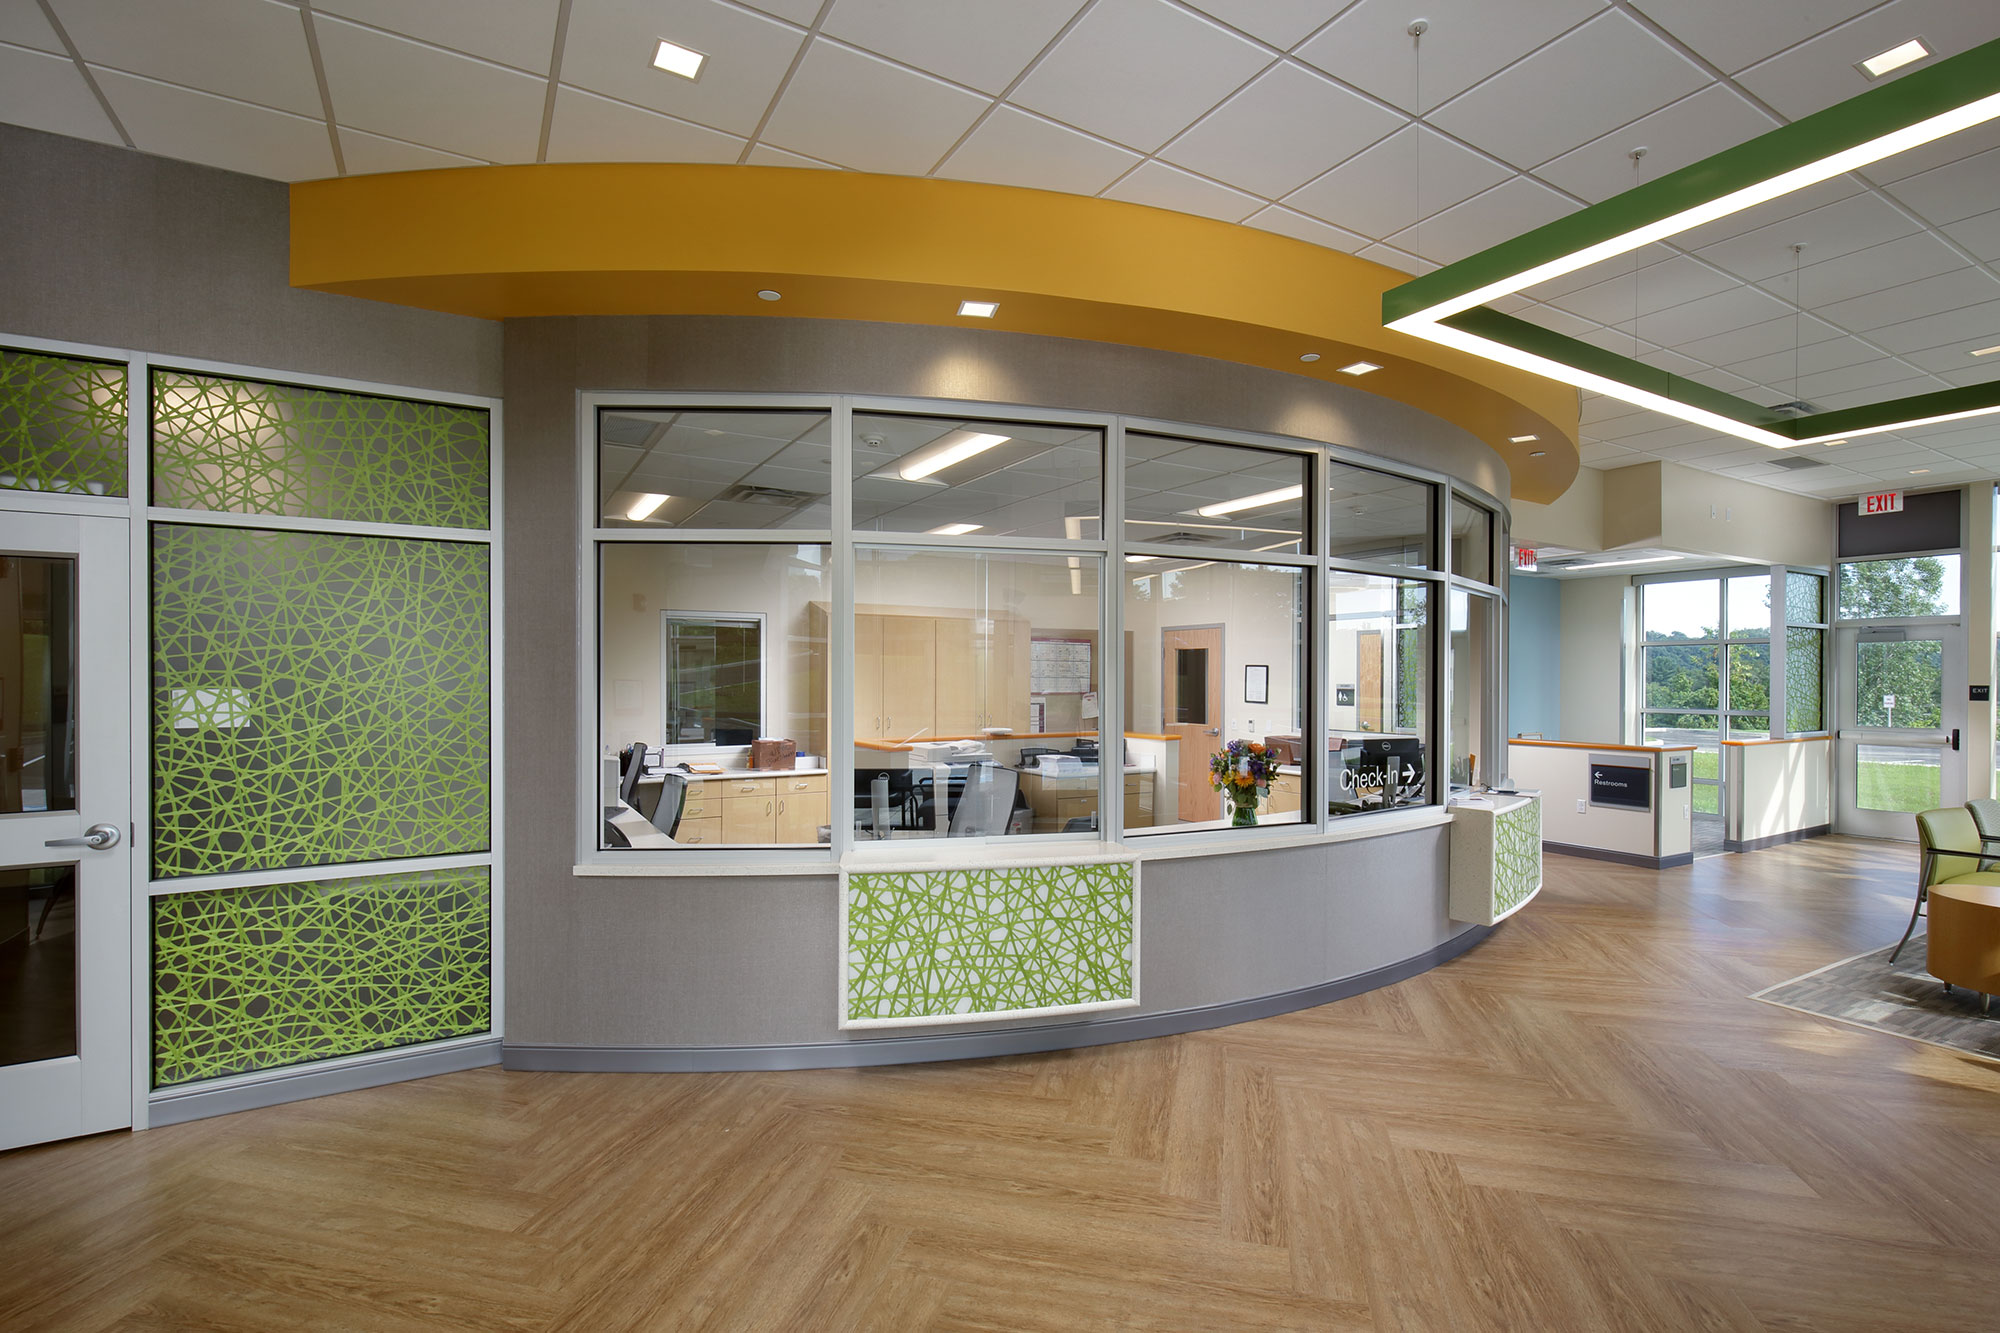 Interior of Outpatient Center California